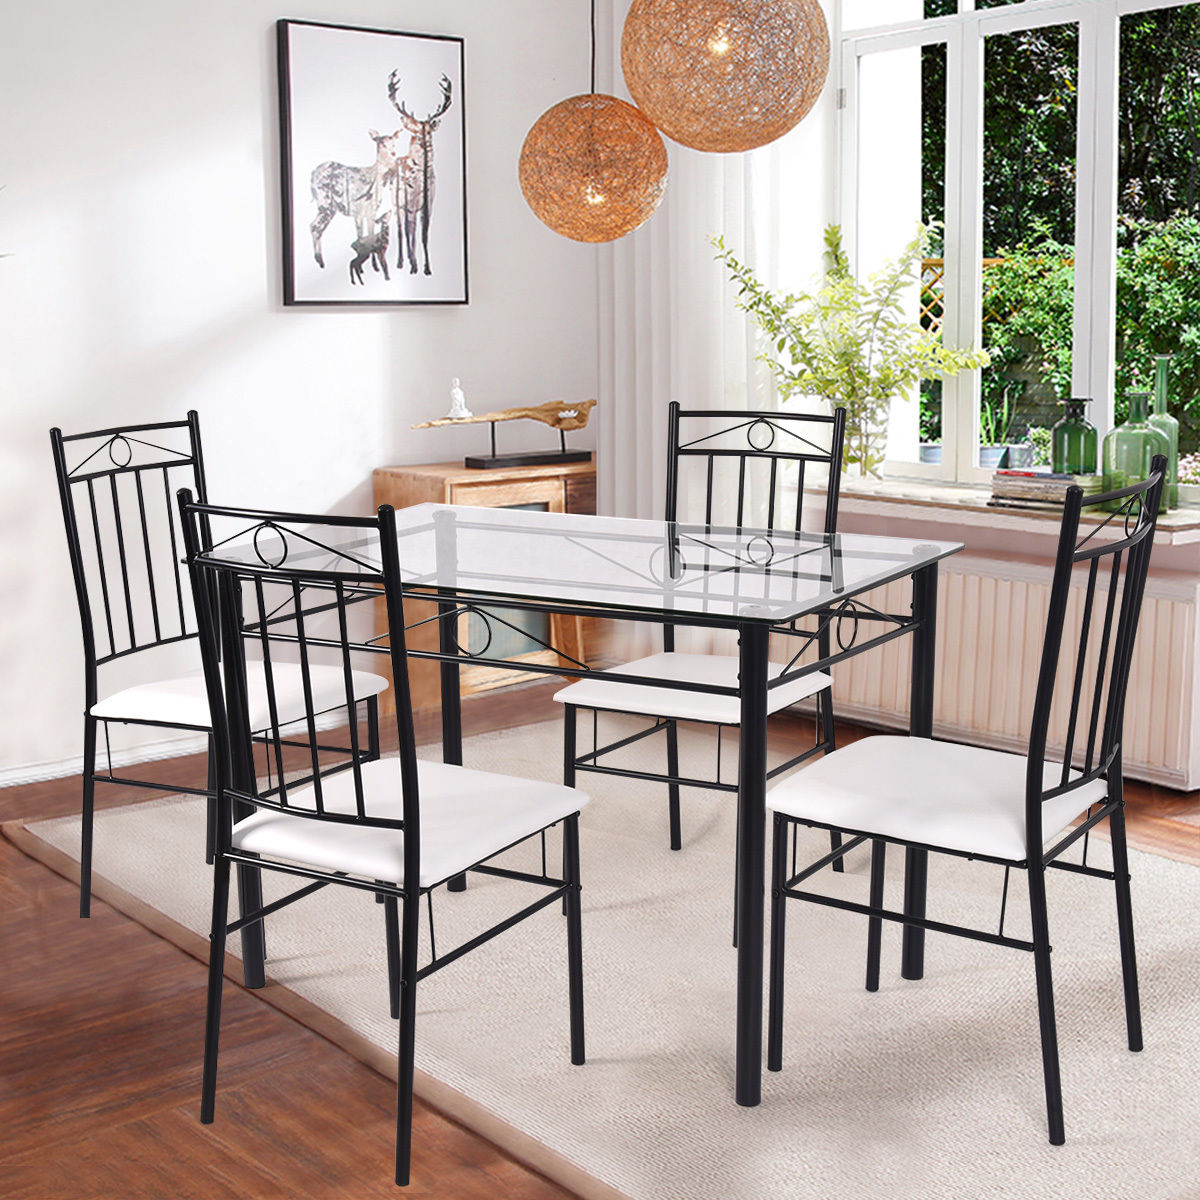 b3400b77d7b3 Costway 5 Piece Dining Set Glass Metal Table and 4 Chairs Kitchen Breakfast  Furniture